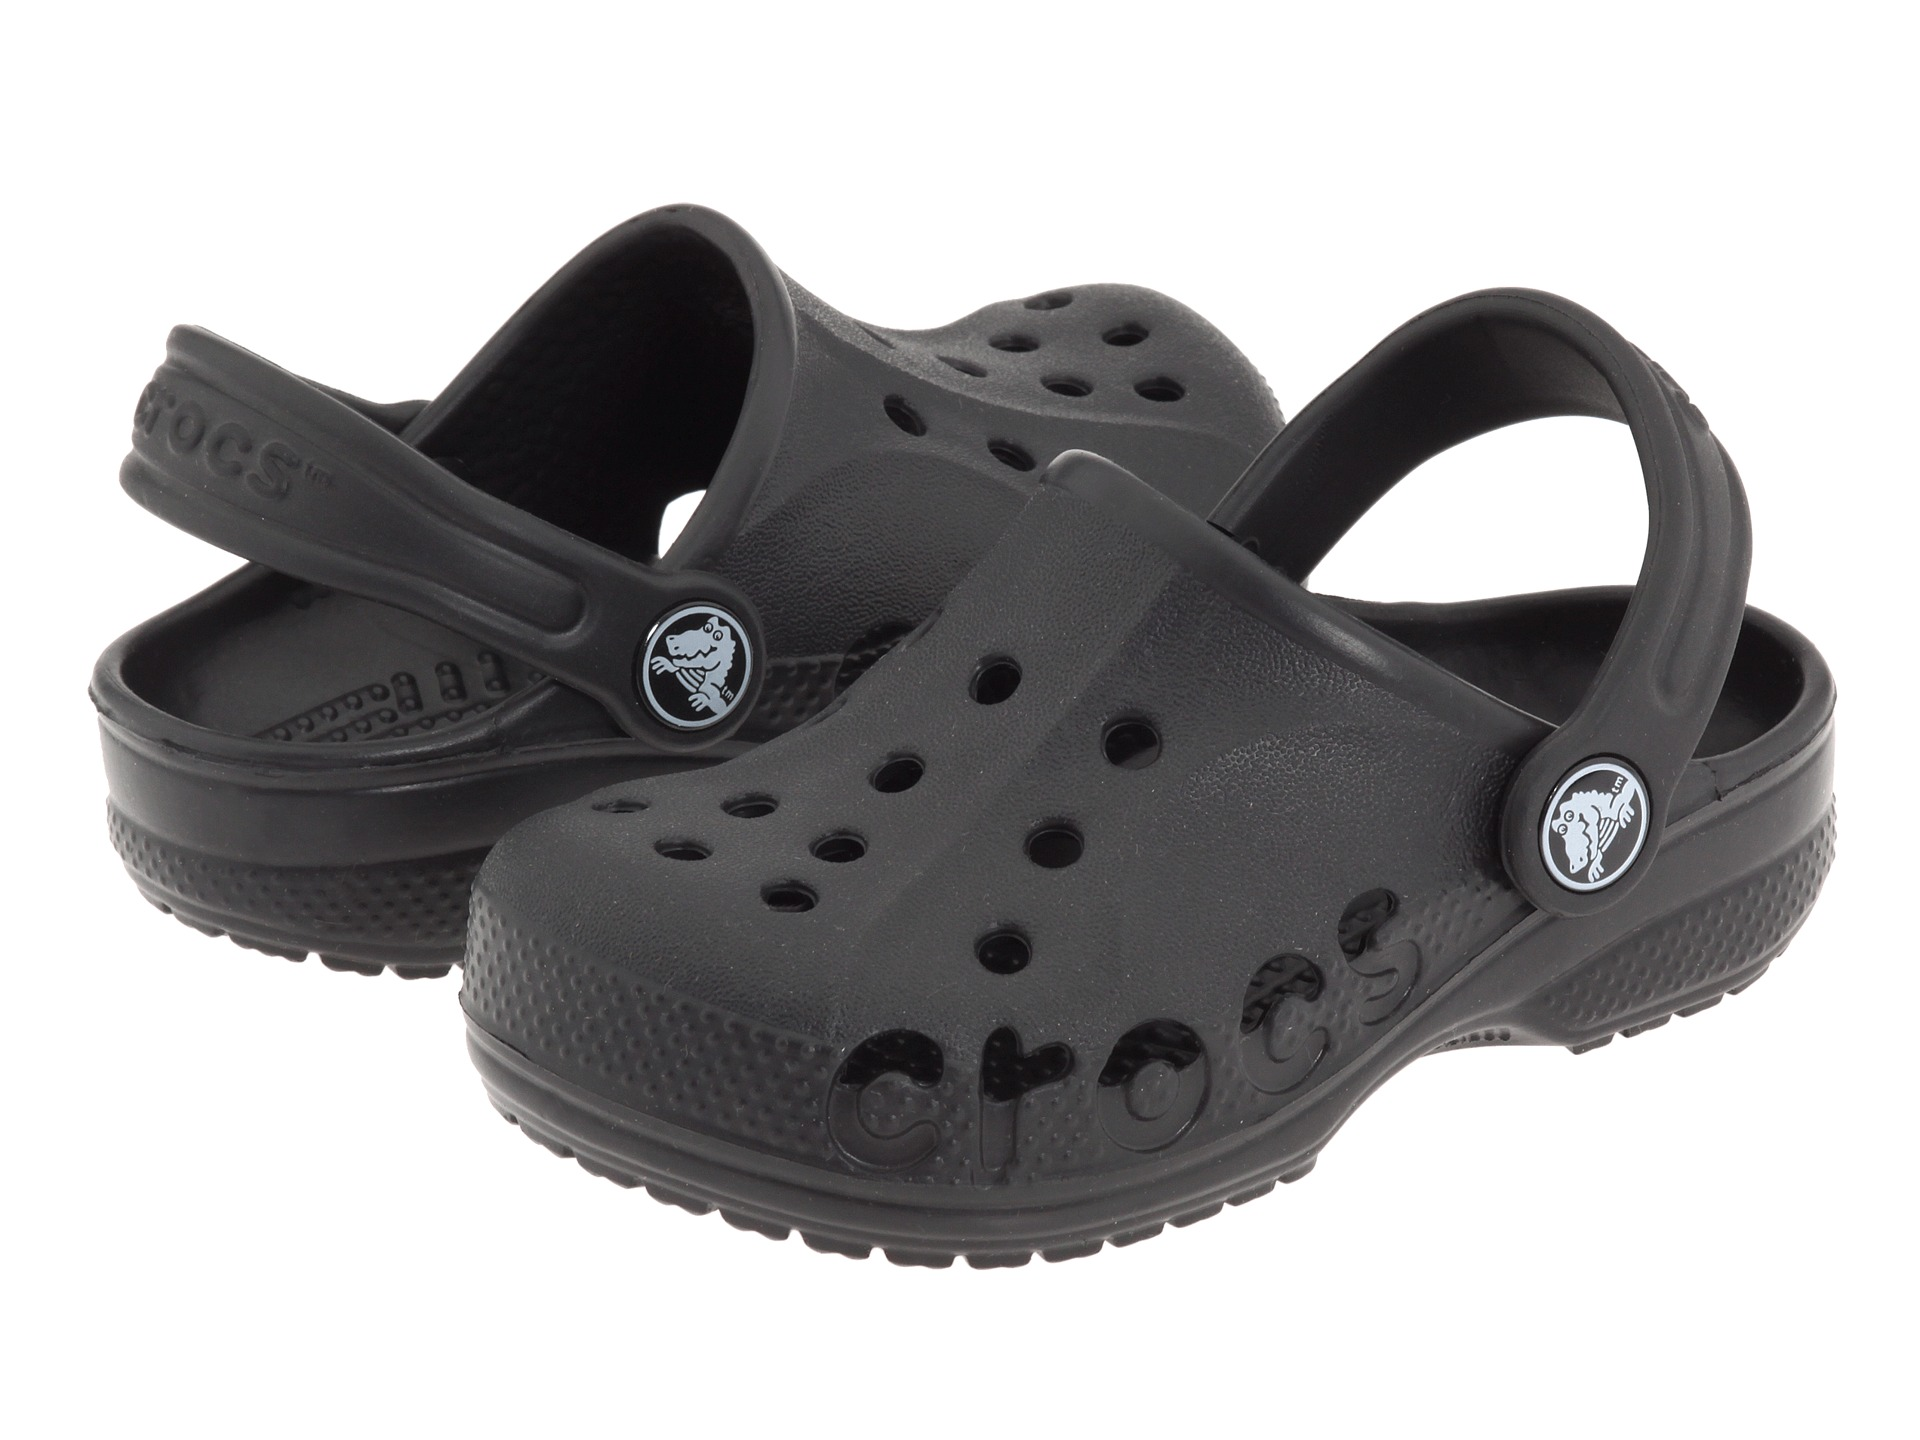 Shop Women's CROCS Black size 8 Sandals at a discounted price at Poshmark. Description: These are a Mens (6) or Woman's (8). Sold by jenniferk3. Fast delivery, full service customer support.